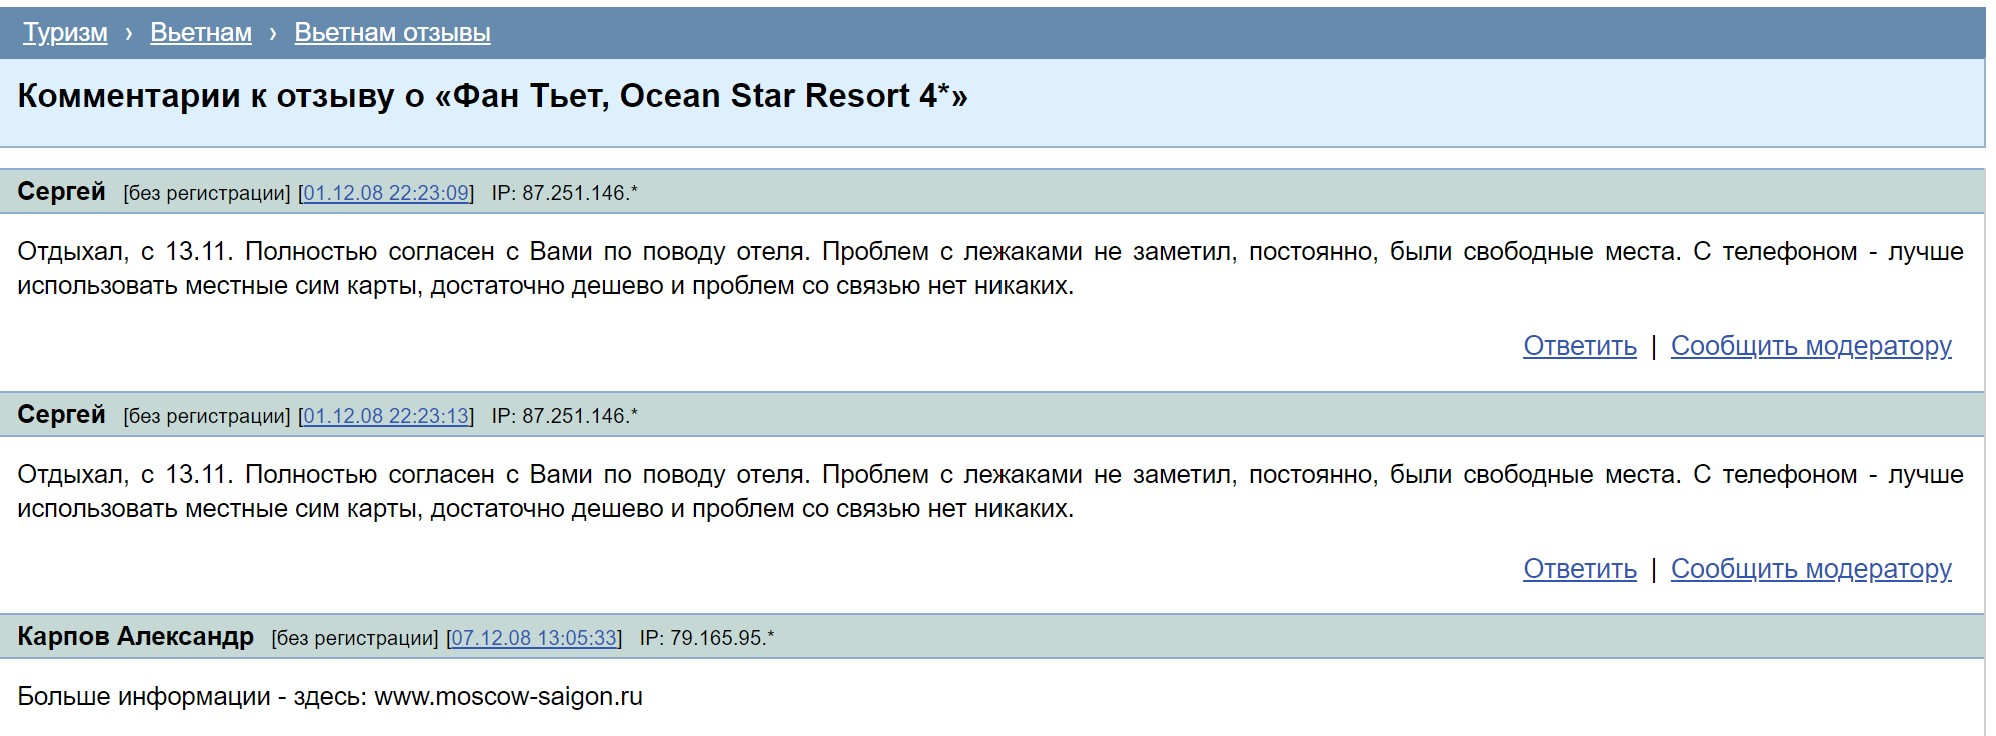 "December 1, 2008 Post by User 'Sergey"" Who Logged in With Proxy: 87.251.146. Source: Otzyv.ru."